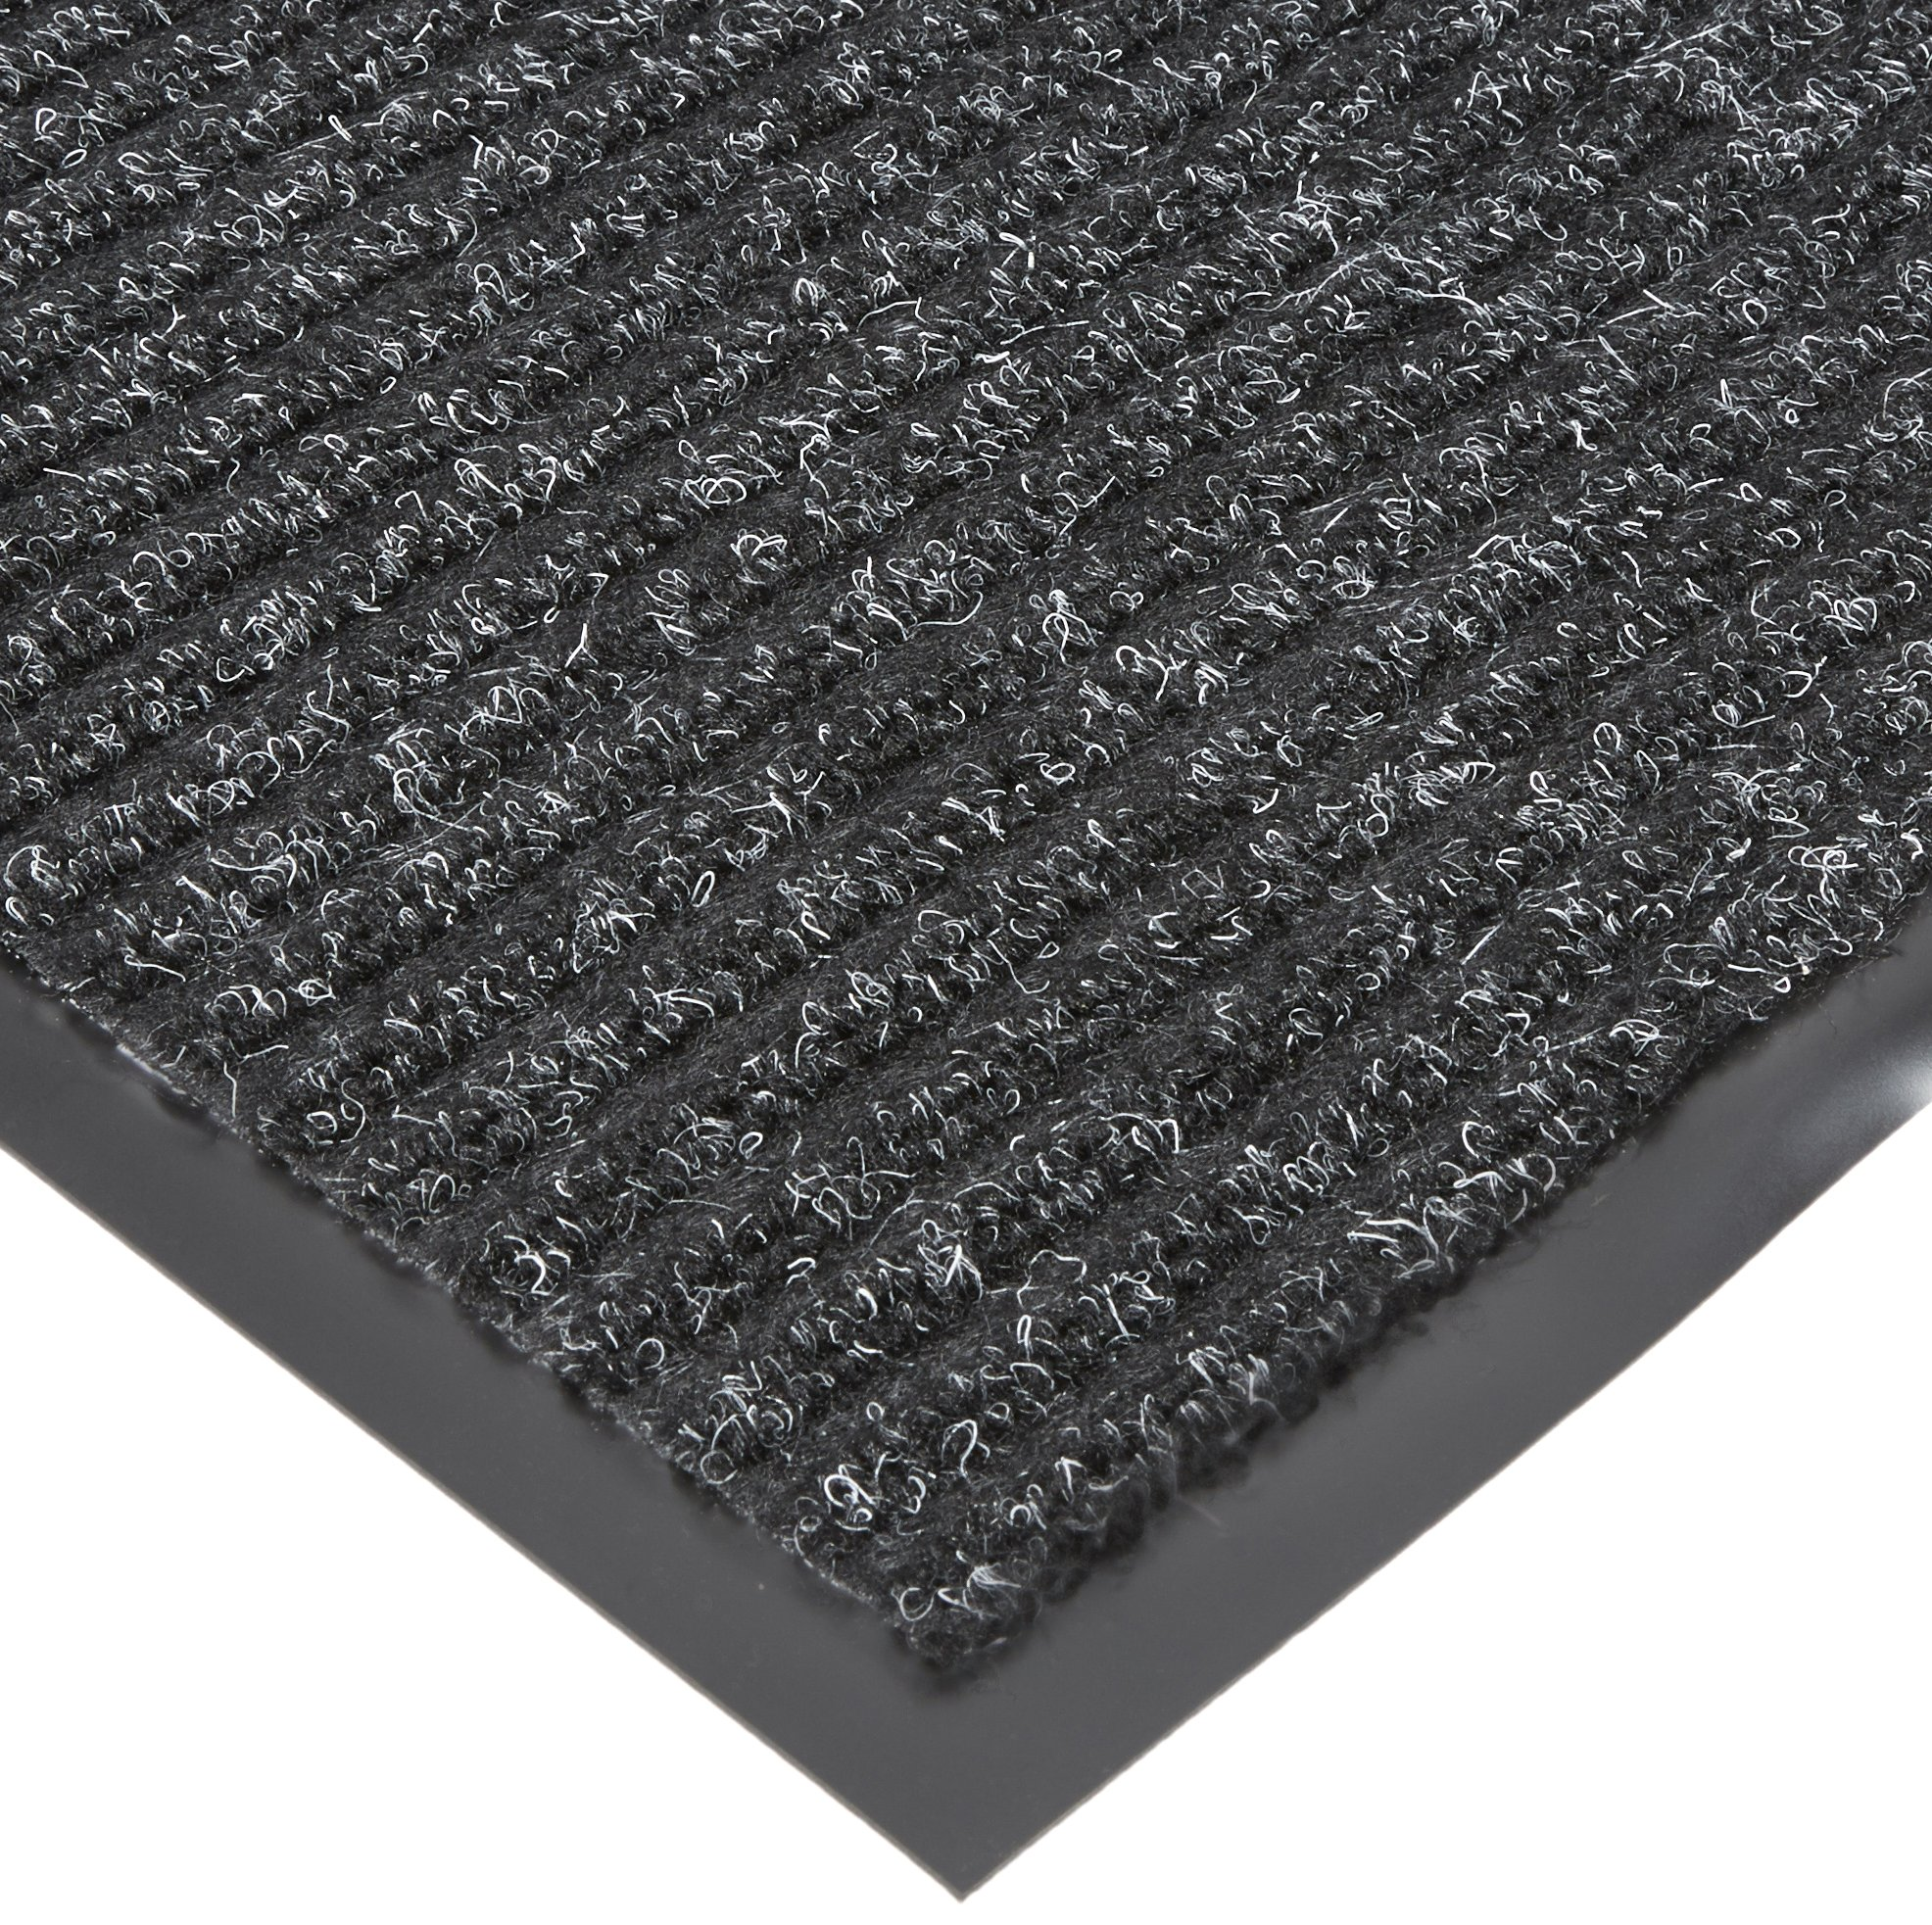 NoTrax T39 Bristol Ridge Scraper Carpet Mat, for Wet and Dry Areas, 4' Width x 20' Length x 3/8'' Thickness, Midnight